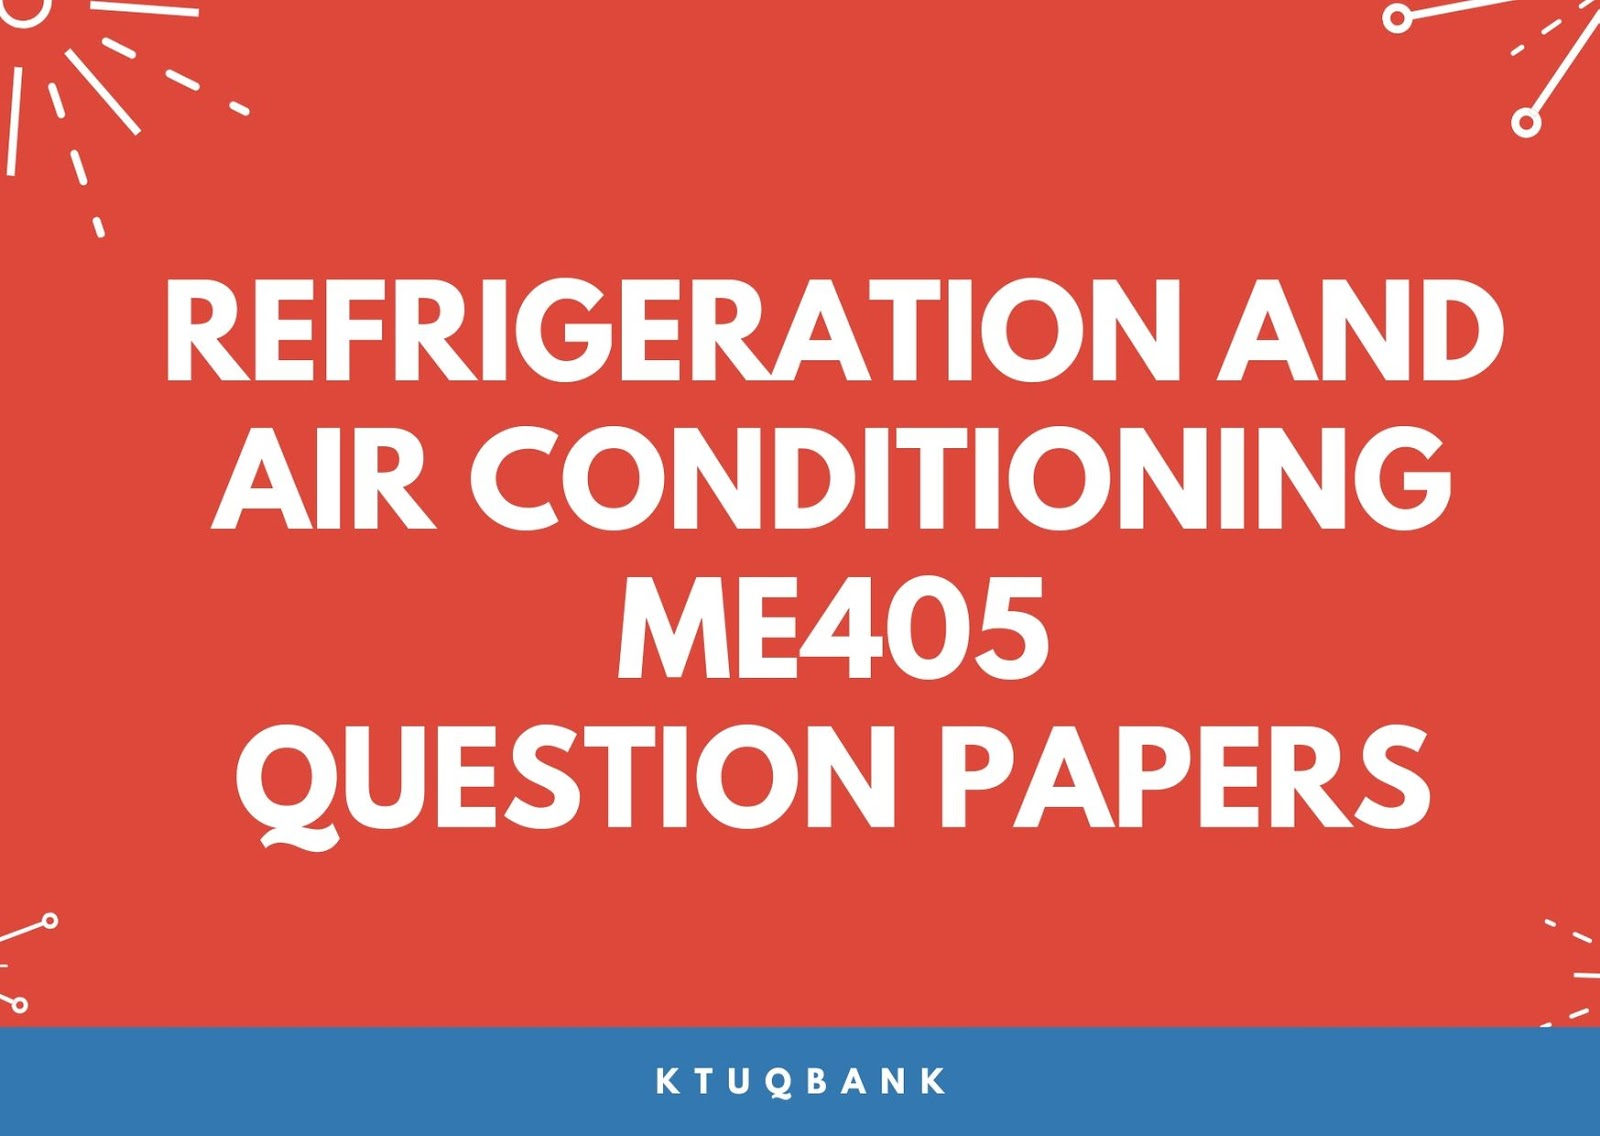 Refrigeration and Air Conditioning | ME405 | Question Papers (2015 batch)